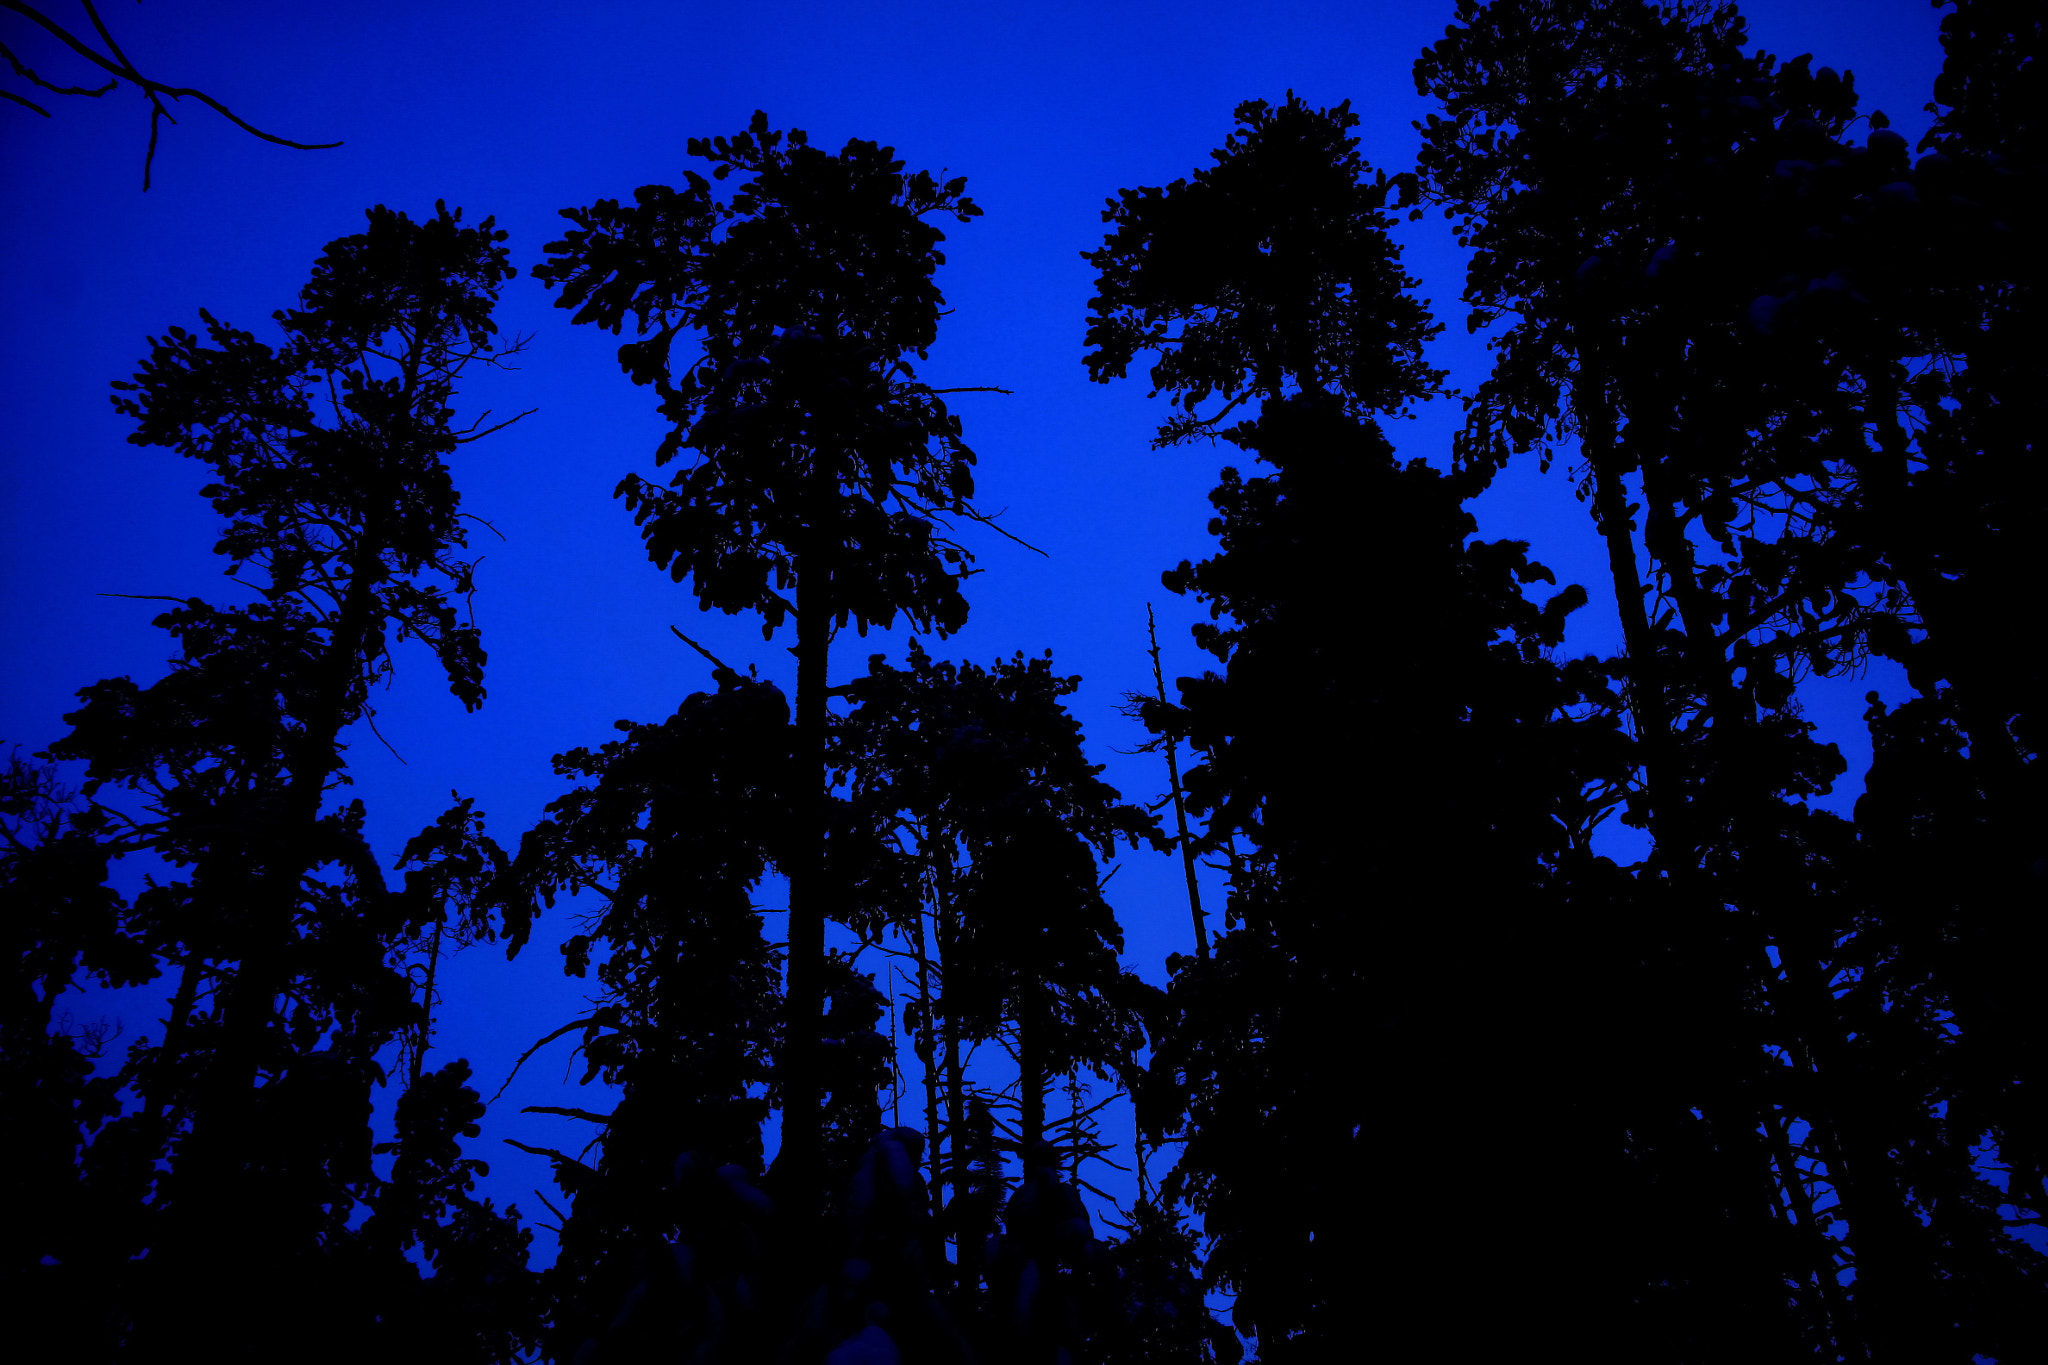 Photograph pines in a darkness by Alexander Schneider on 500px